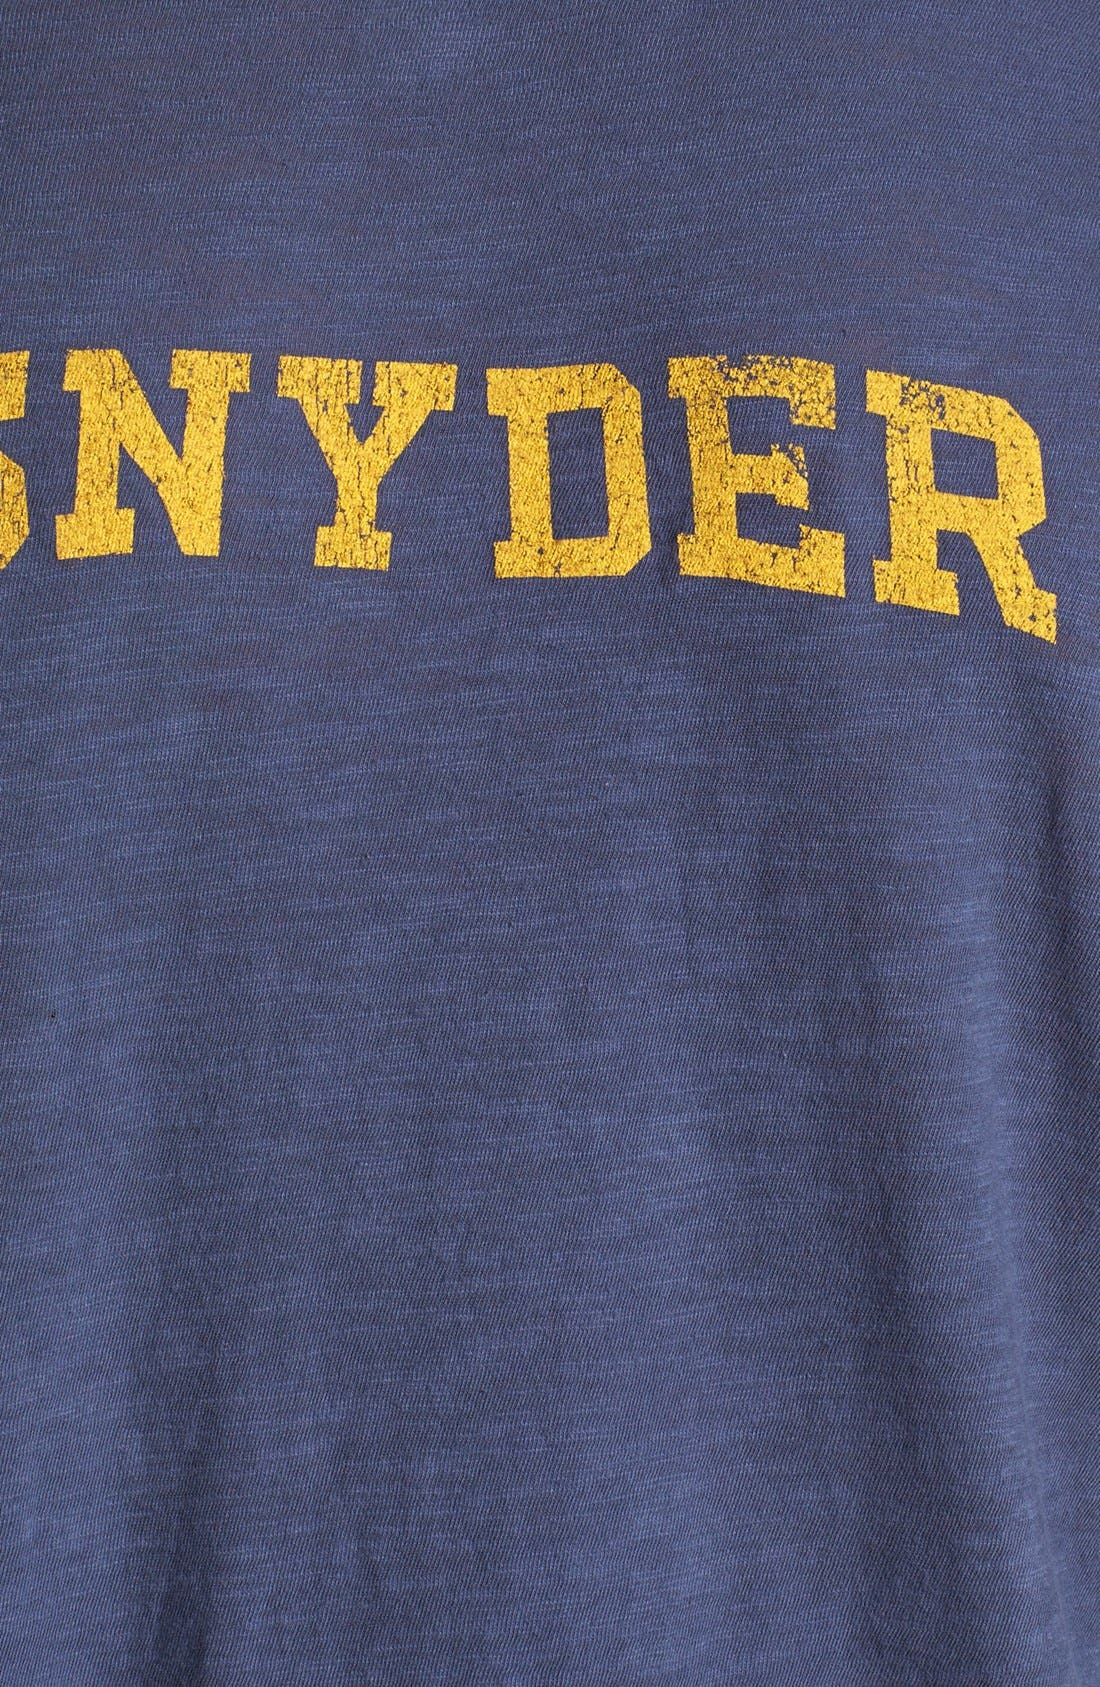 Alternate Image 3  - Todd Snyder + Champion 'City Gym - Classic' Crewneck T-Shirt